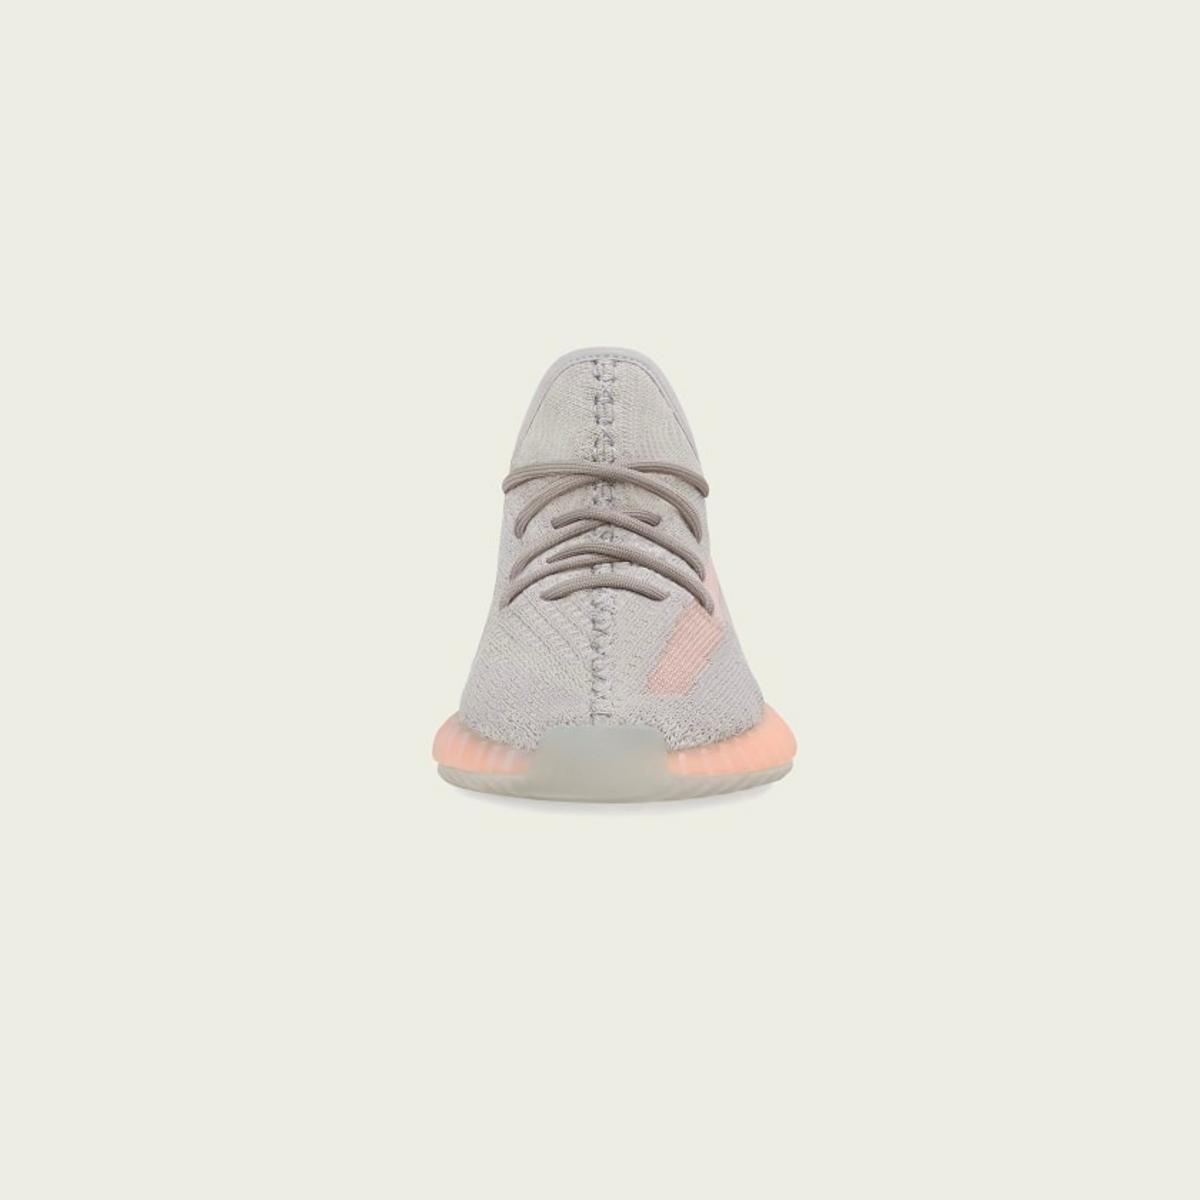 dd61f345b Adidas Yeezy Boost 350 V2 TRFRM UK 13 in LE1 Leicester for £280.00 ...